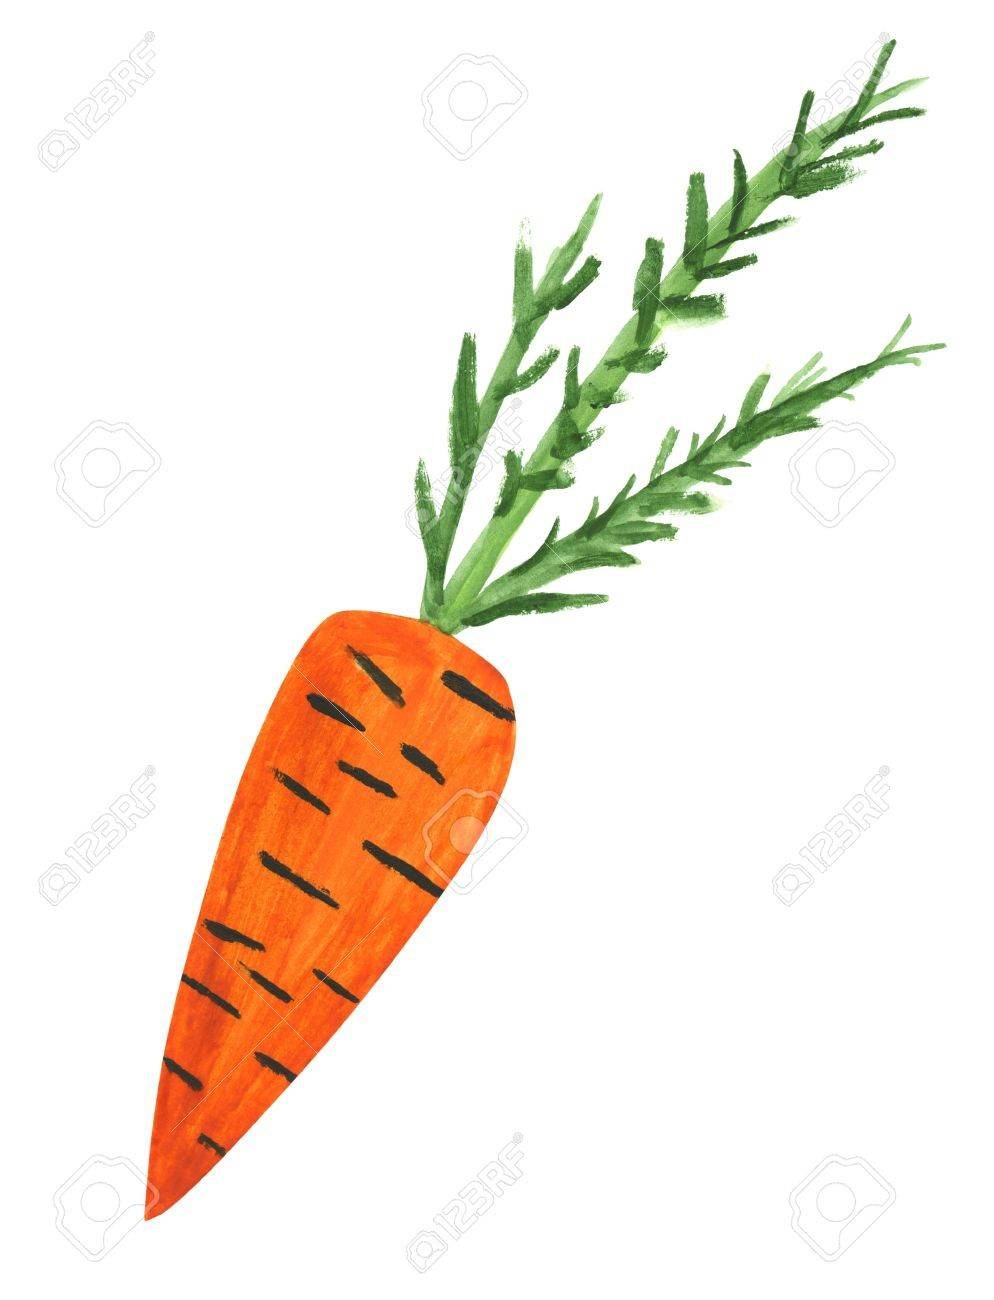 A Child Drawing Of A A Carrot Painted Then Scanned Stock Photo